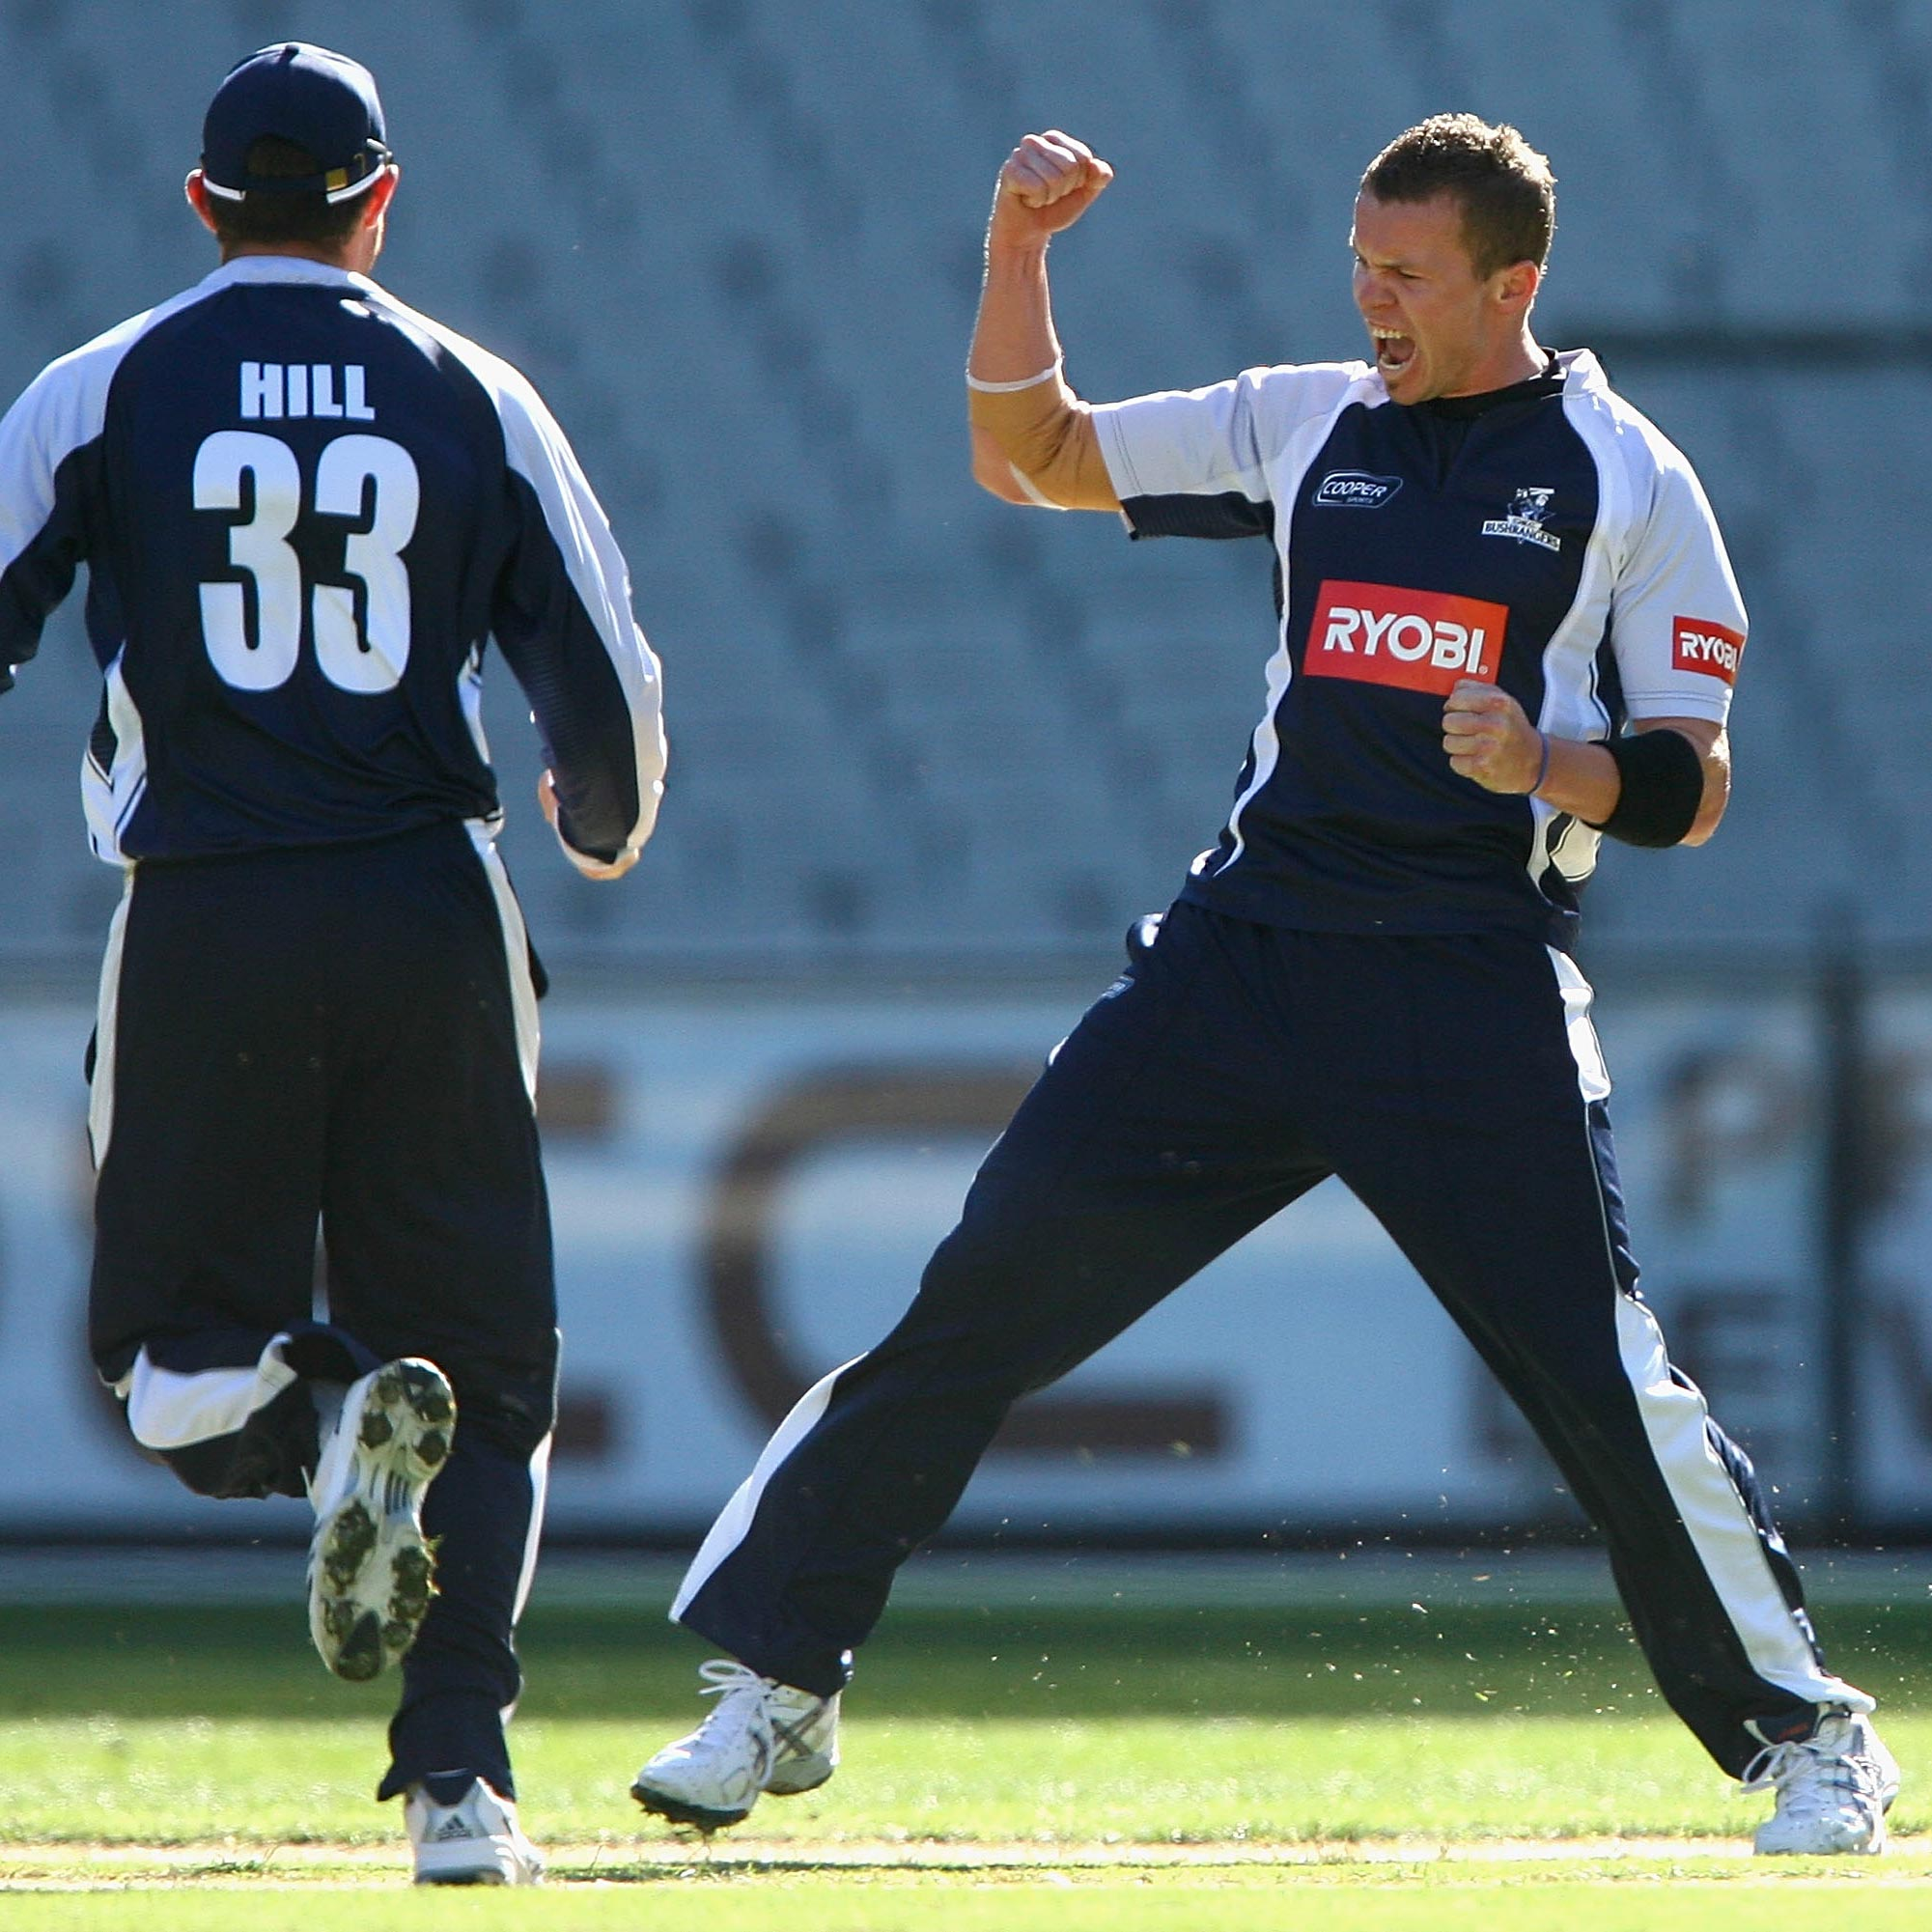 Peter Siddle celebrates a wicket for Victoria // Getty